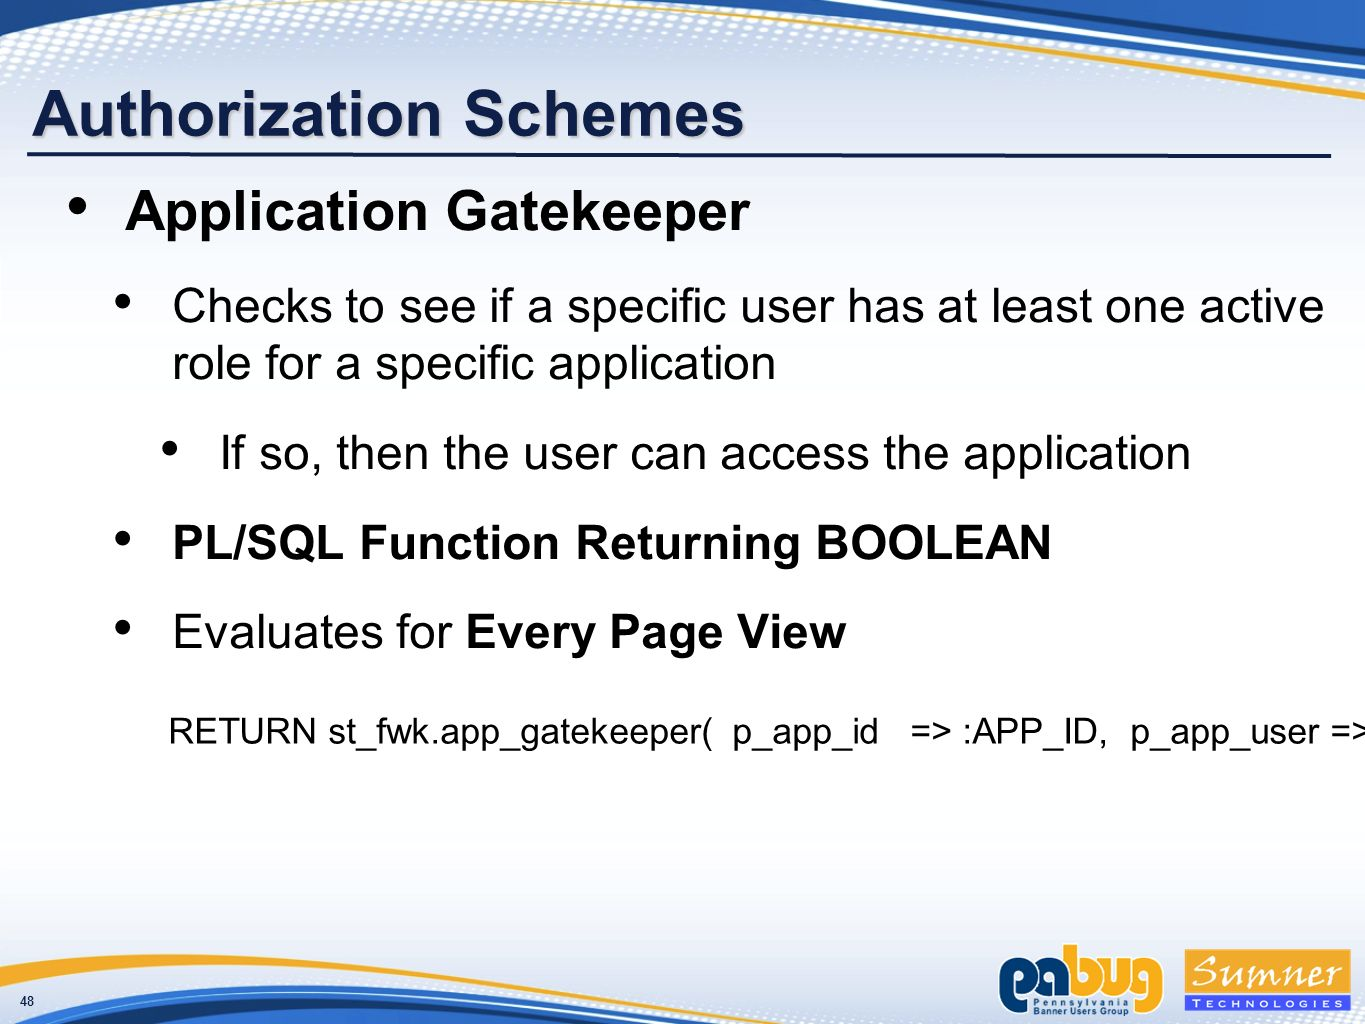 48 Authorization Schemes Application Gatekeeper Checks to see if a specific user has at least one active role for a specific application If so, then the user can access the application PL/SQL Function Returning BOOLEAN Evaluates for Every Page View RETURN st_fwk.app_gatekeeper( p_app_id => :APP_ID, p_app_user => :APP_USER);